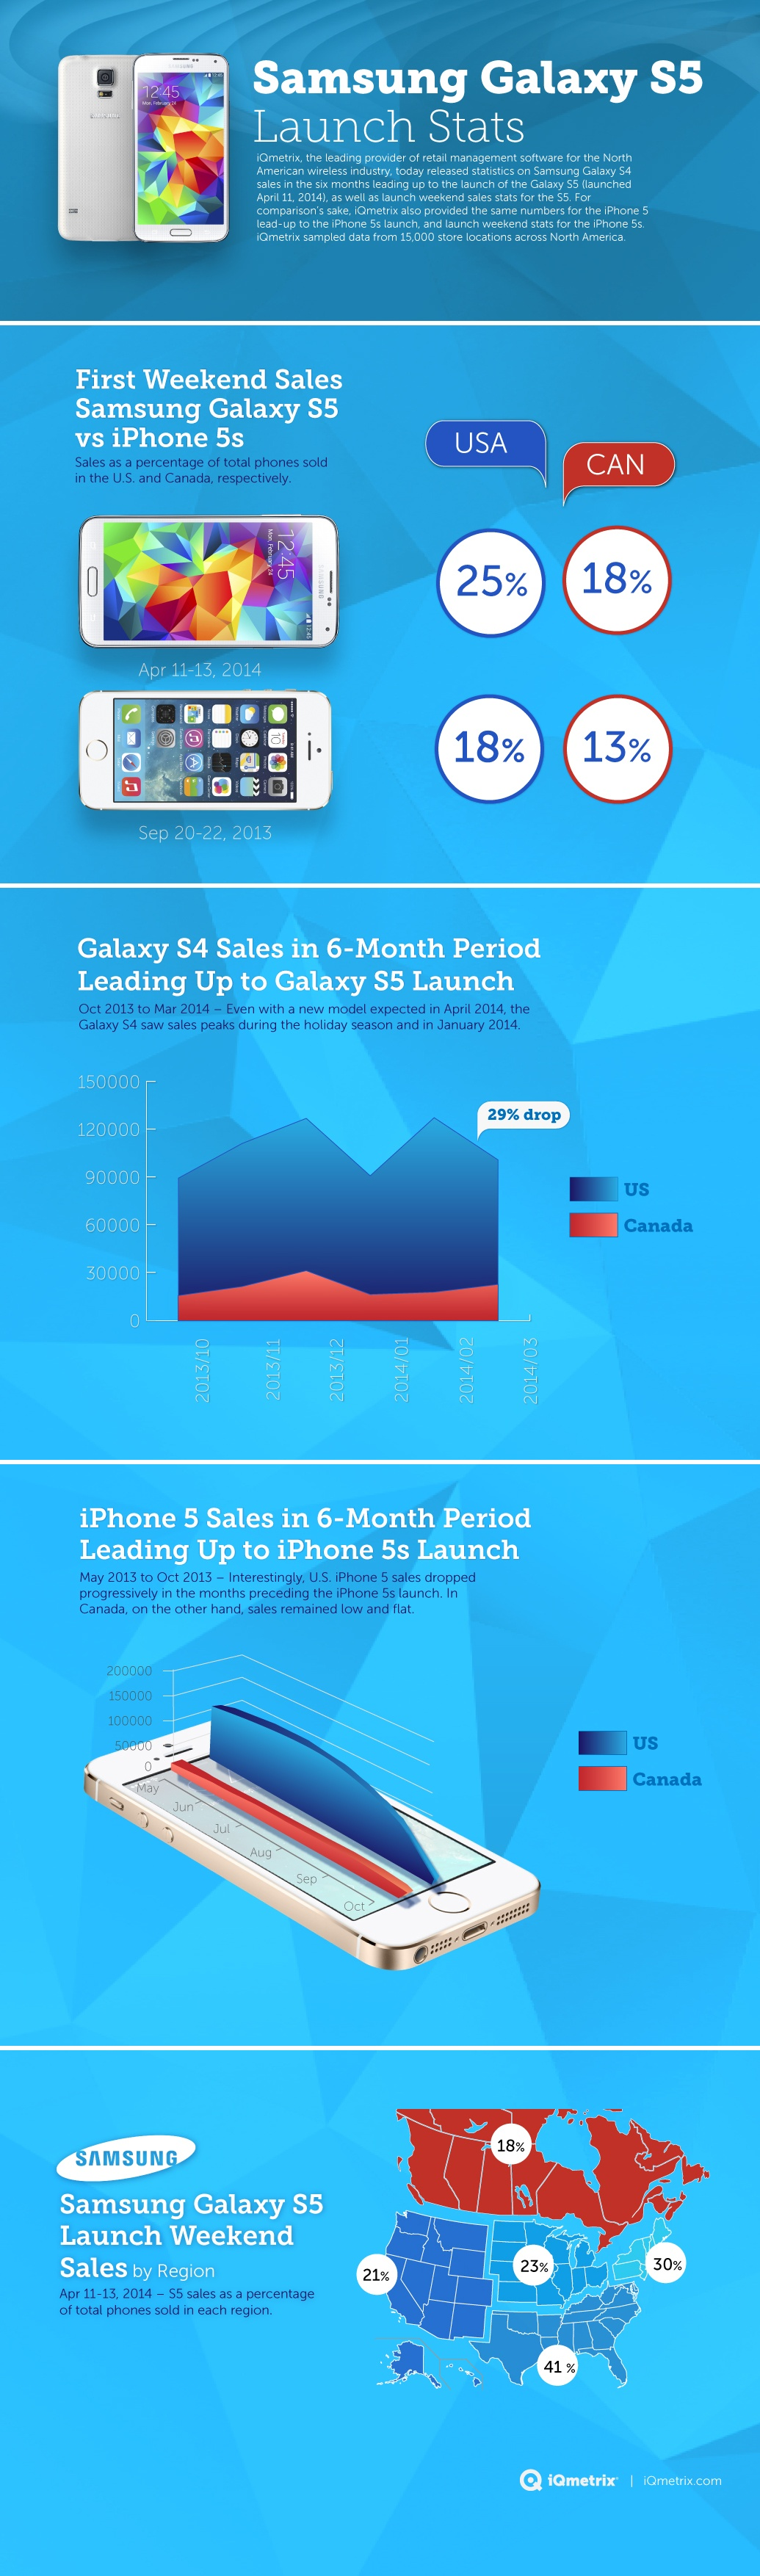 Samsung Galaxy S5 Launch Sales